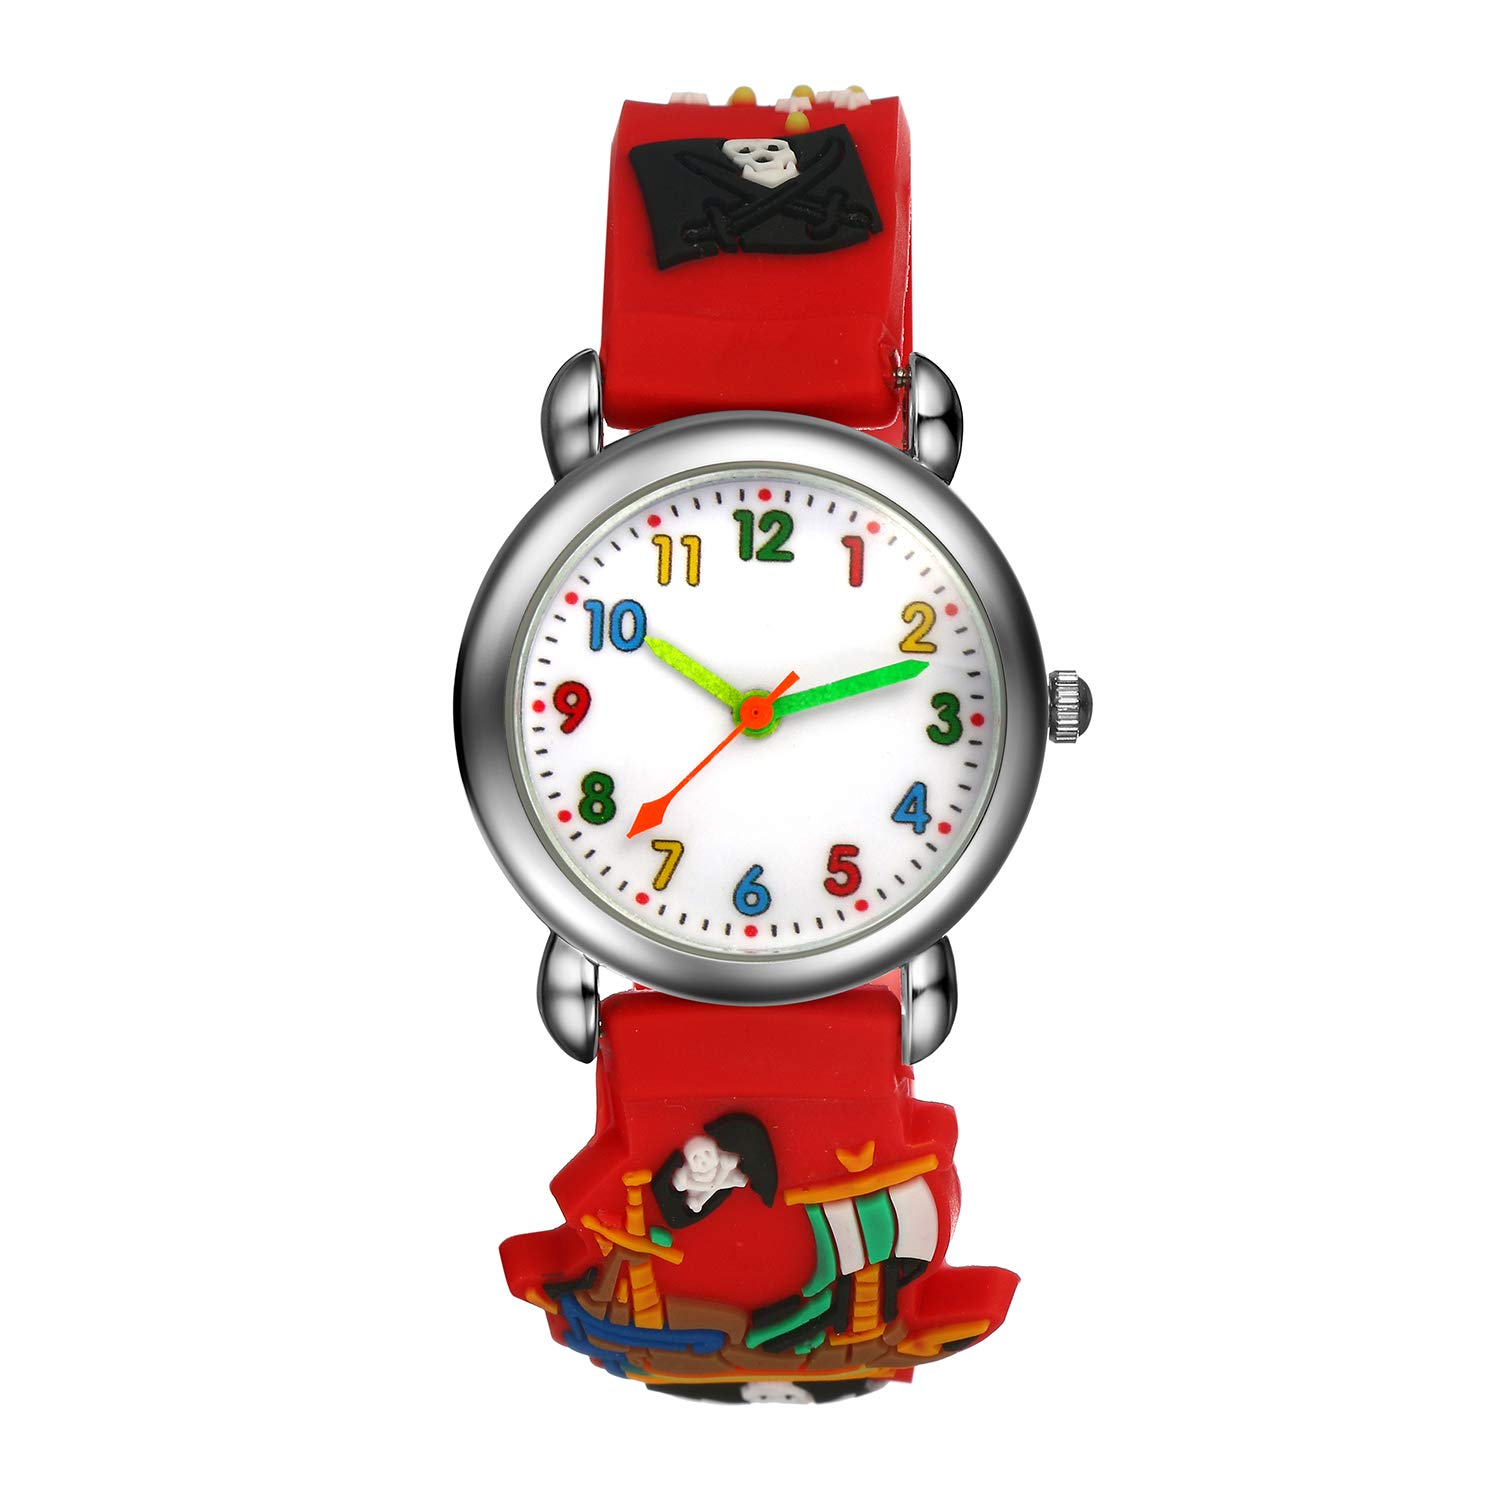 Kids Children Watch, Boys Cute Cartoon Pirate Treasure Pattern Colorful Comfortable Band Analog Quartz Wristwatches - Red